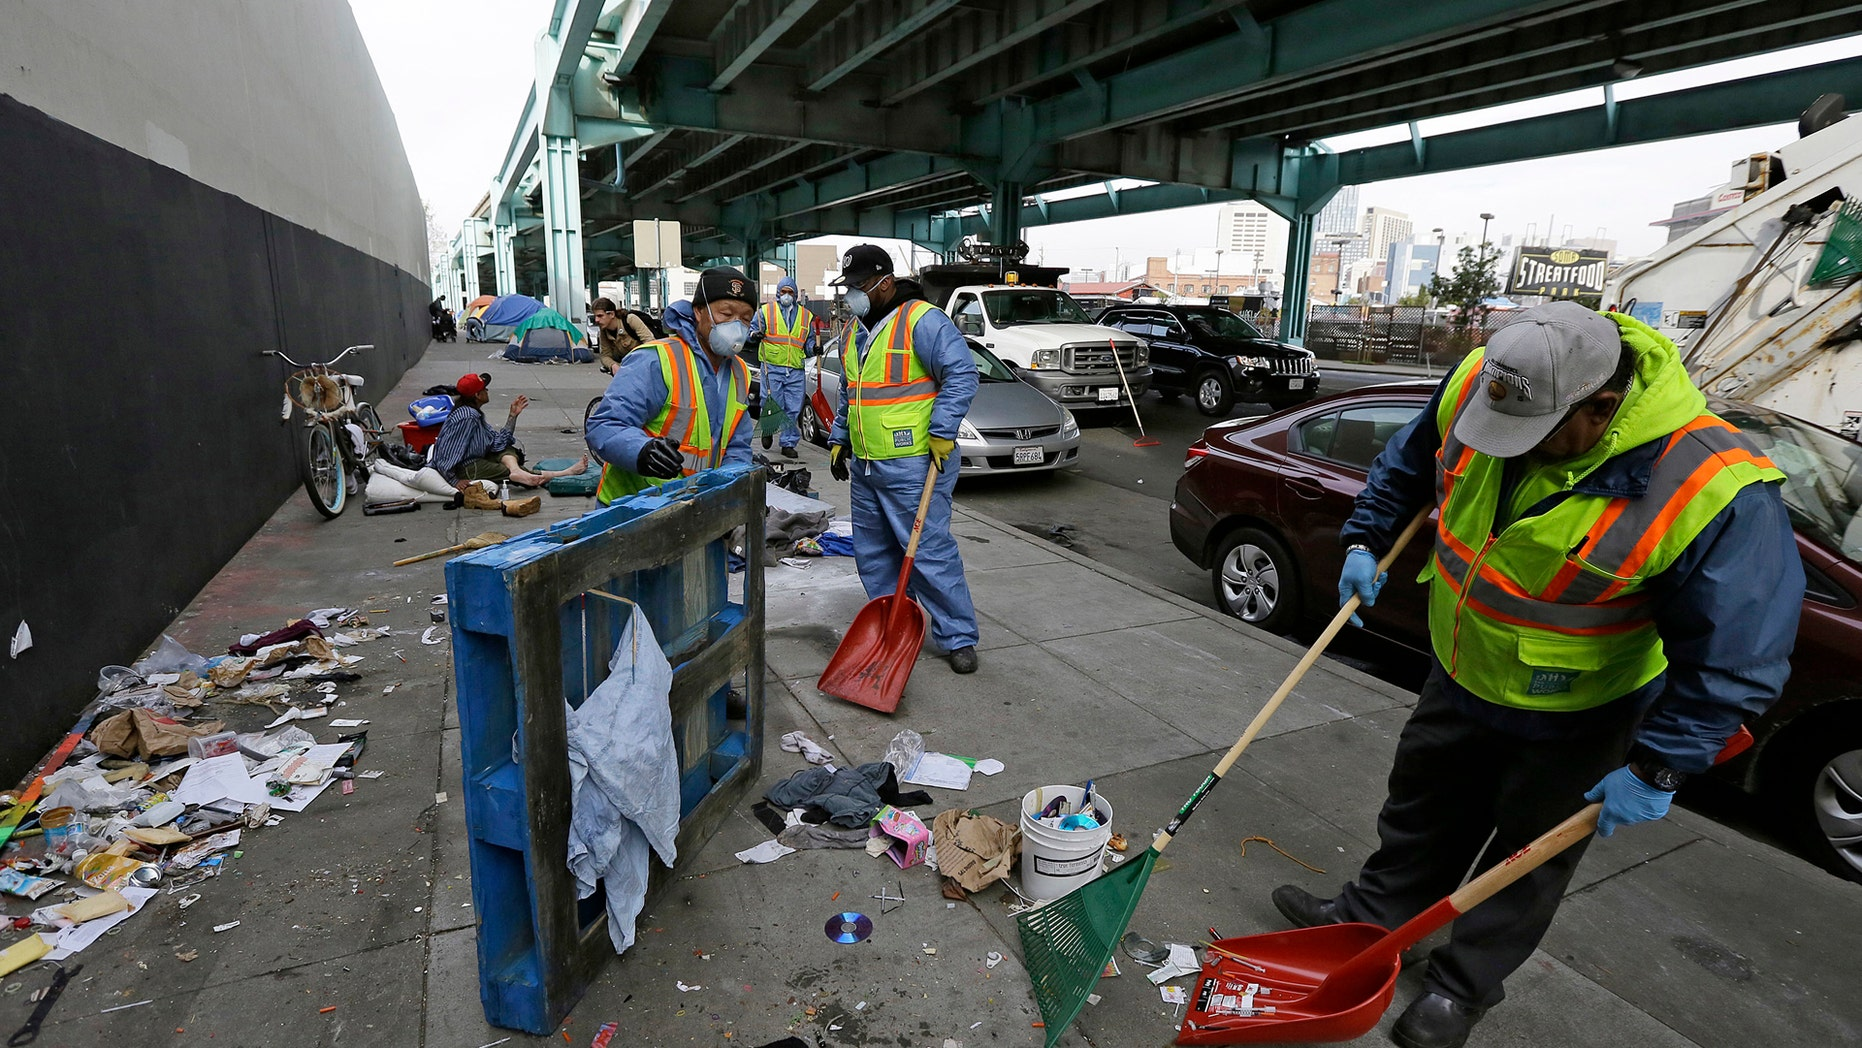 FILE - In this Feb. 26, 2016 file photo, city workers clear away debris that includes syringes from the remains of a tent city along Division Street in San Francisco. Sean Miller, a 24-year-old transplant, is offering a free app to make it easier for people to report waste - human and otherwise - and used needles and anything else gross on the famously dirty streets of San Francisco. (AP Photo/Eric Risberg, File)